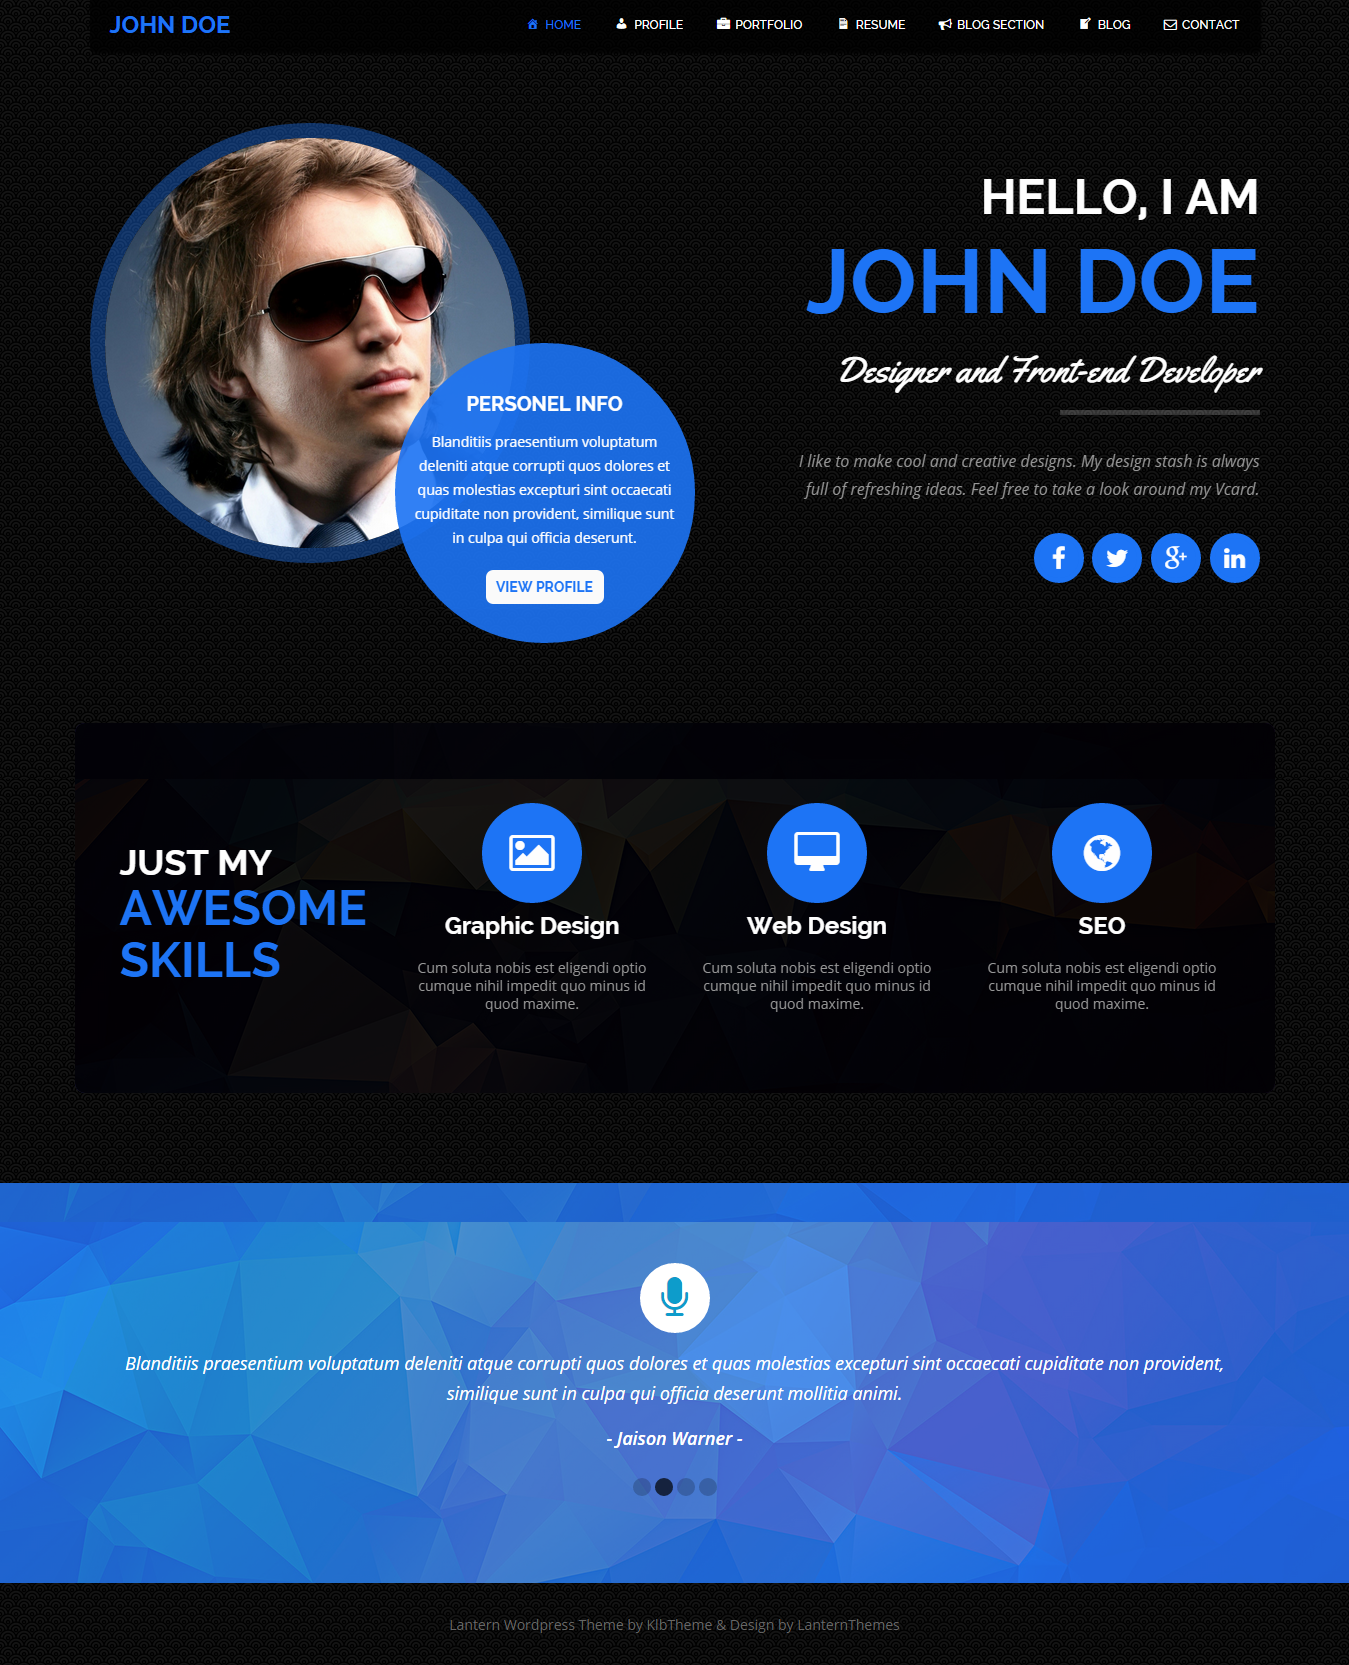 lantern personal resume and portfolio theme by klbtheme lantern personal resume and portfolio theme